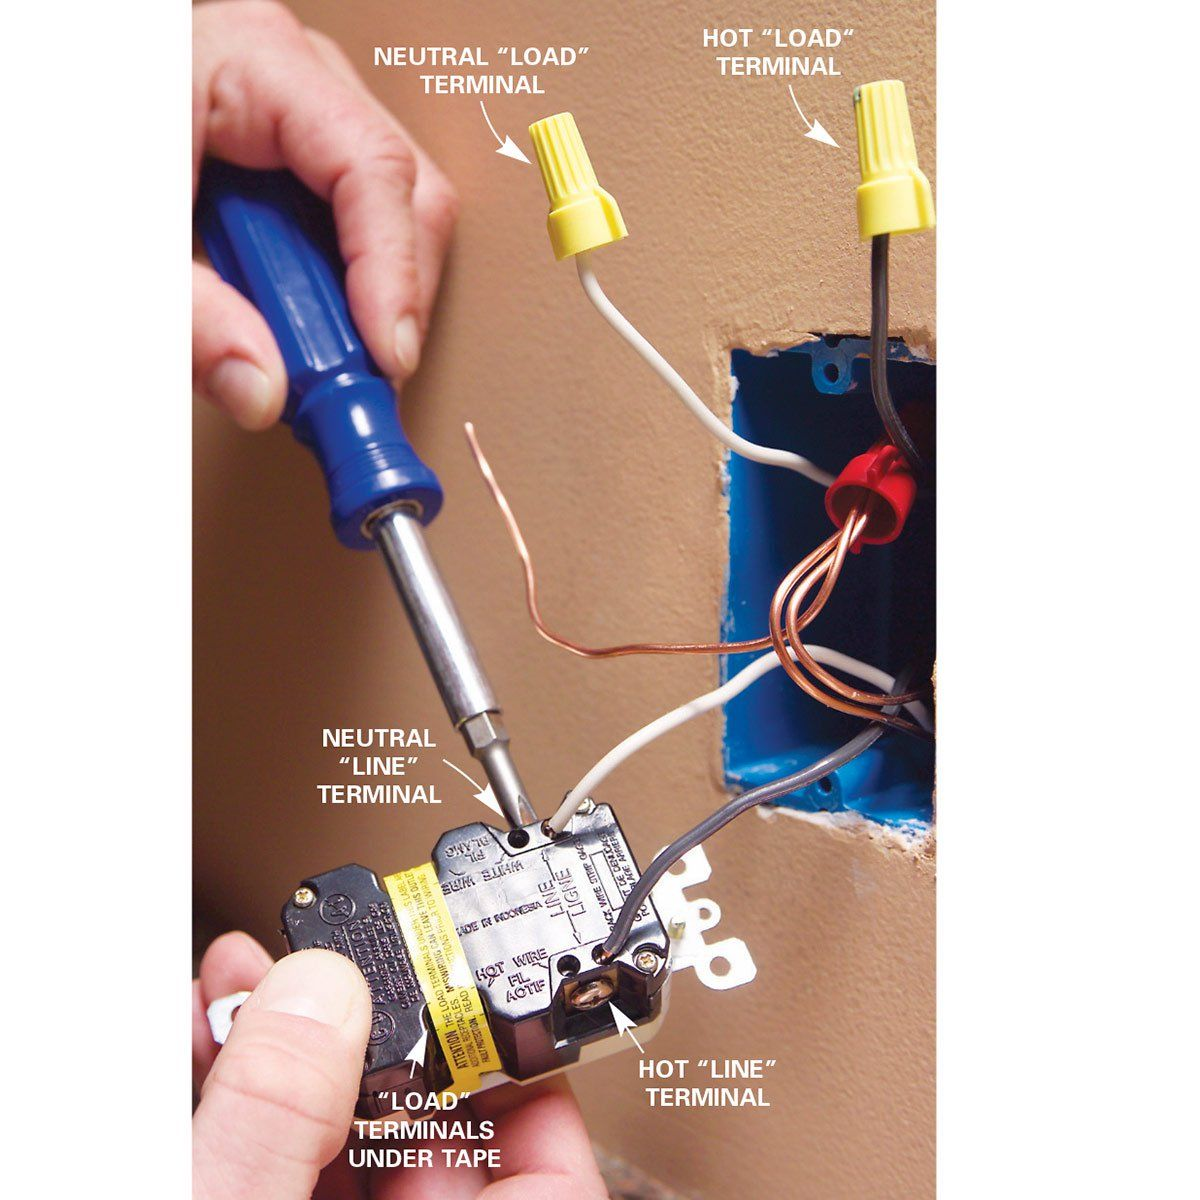 wiring a switch and outlet the safe and easy way family handyman the family handyman [ 1200 x 1200 Pixel ]